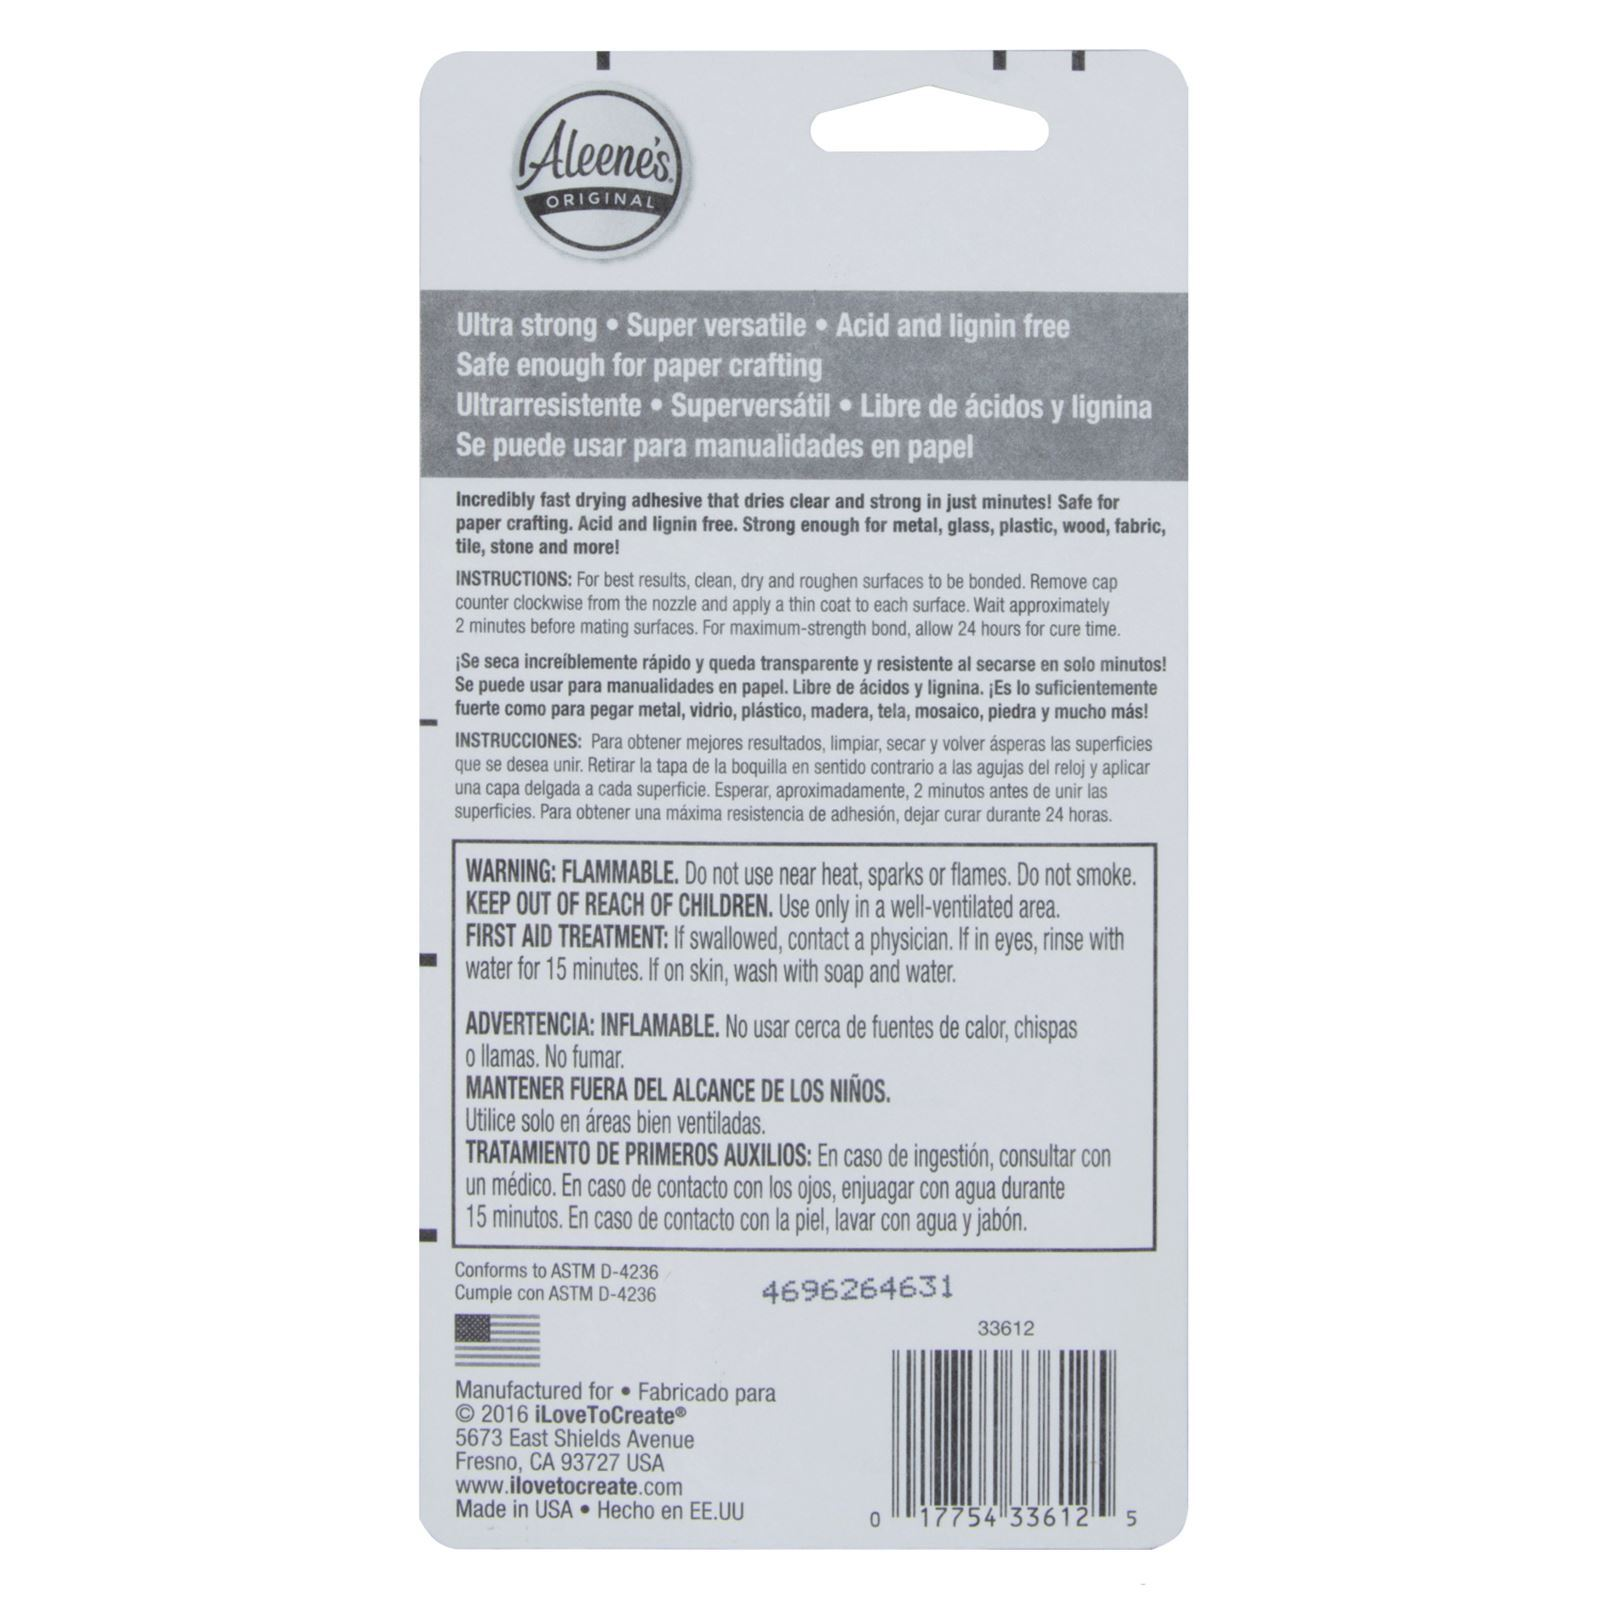 Aleene's® Rapid Dry Mixed Media Adhesive™ back package